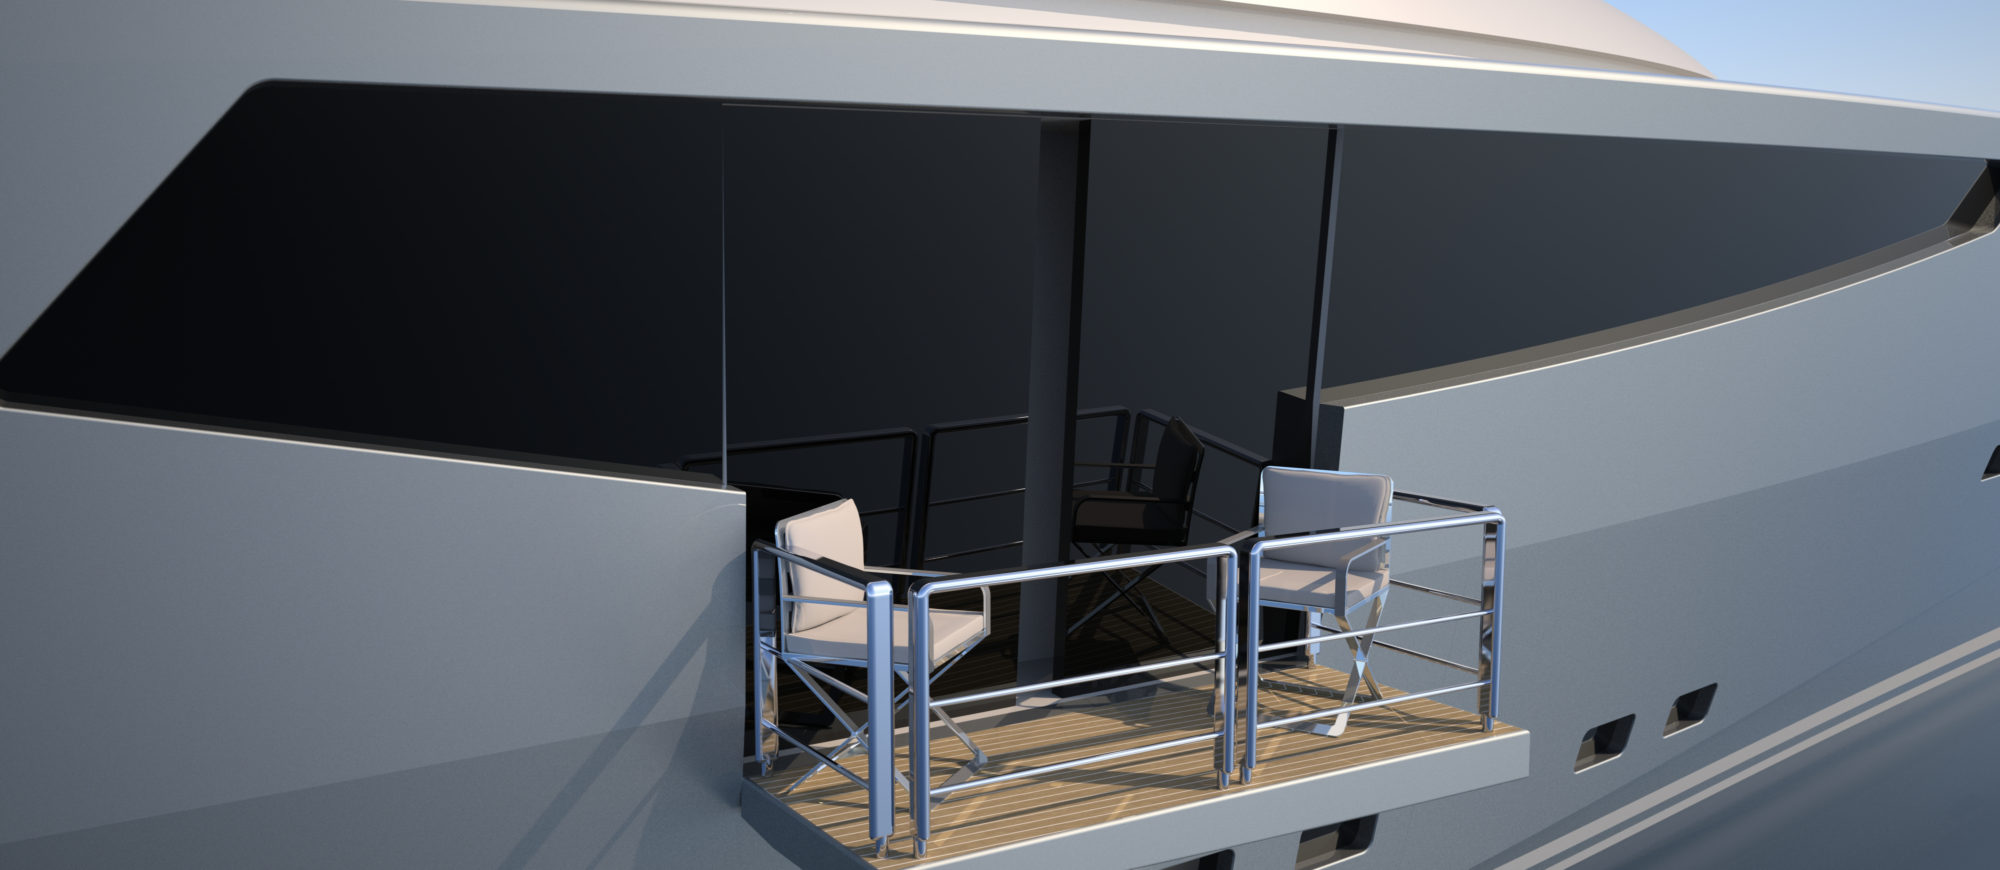 Conrad C166-Superyacht Concept Vallicelli Visualisation Owner's Cabin Balcony